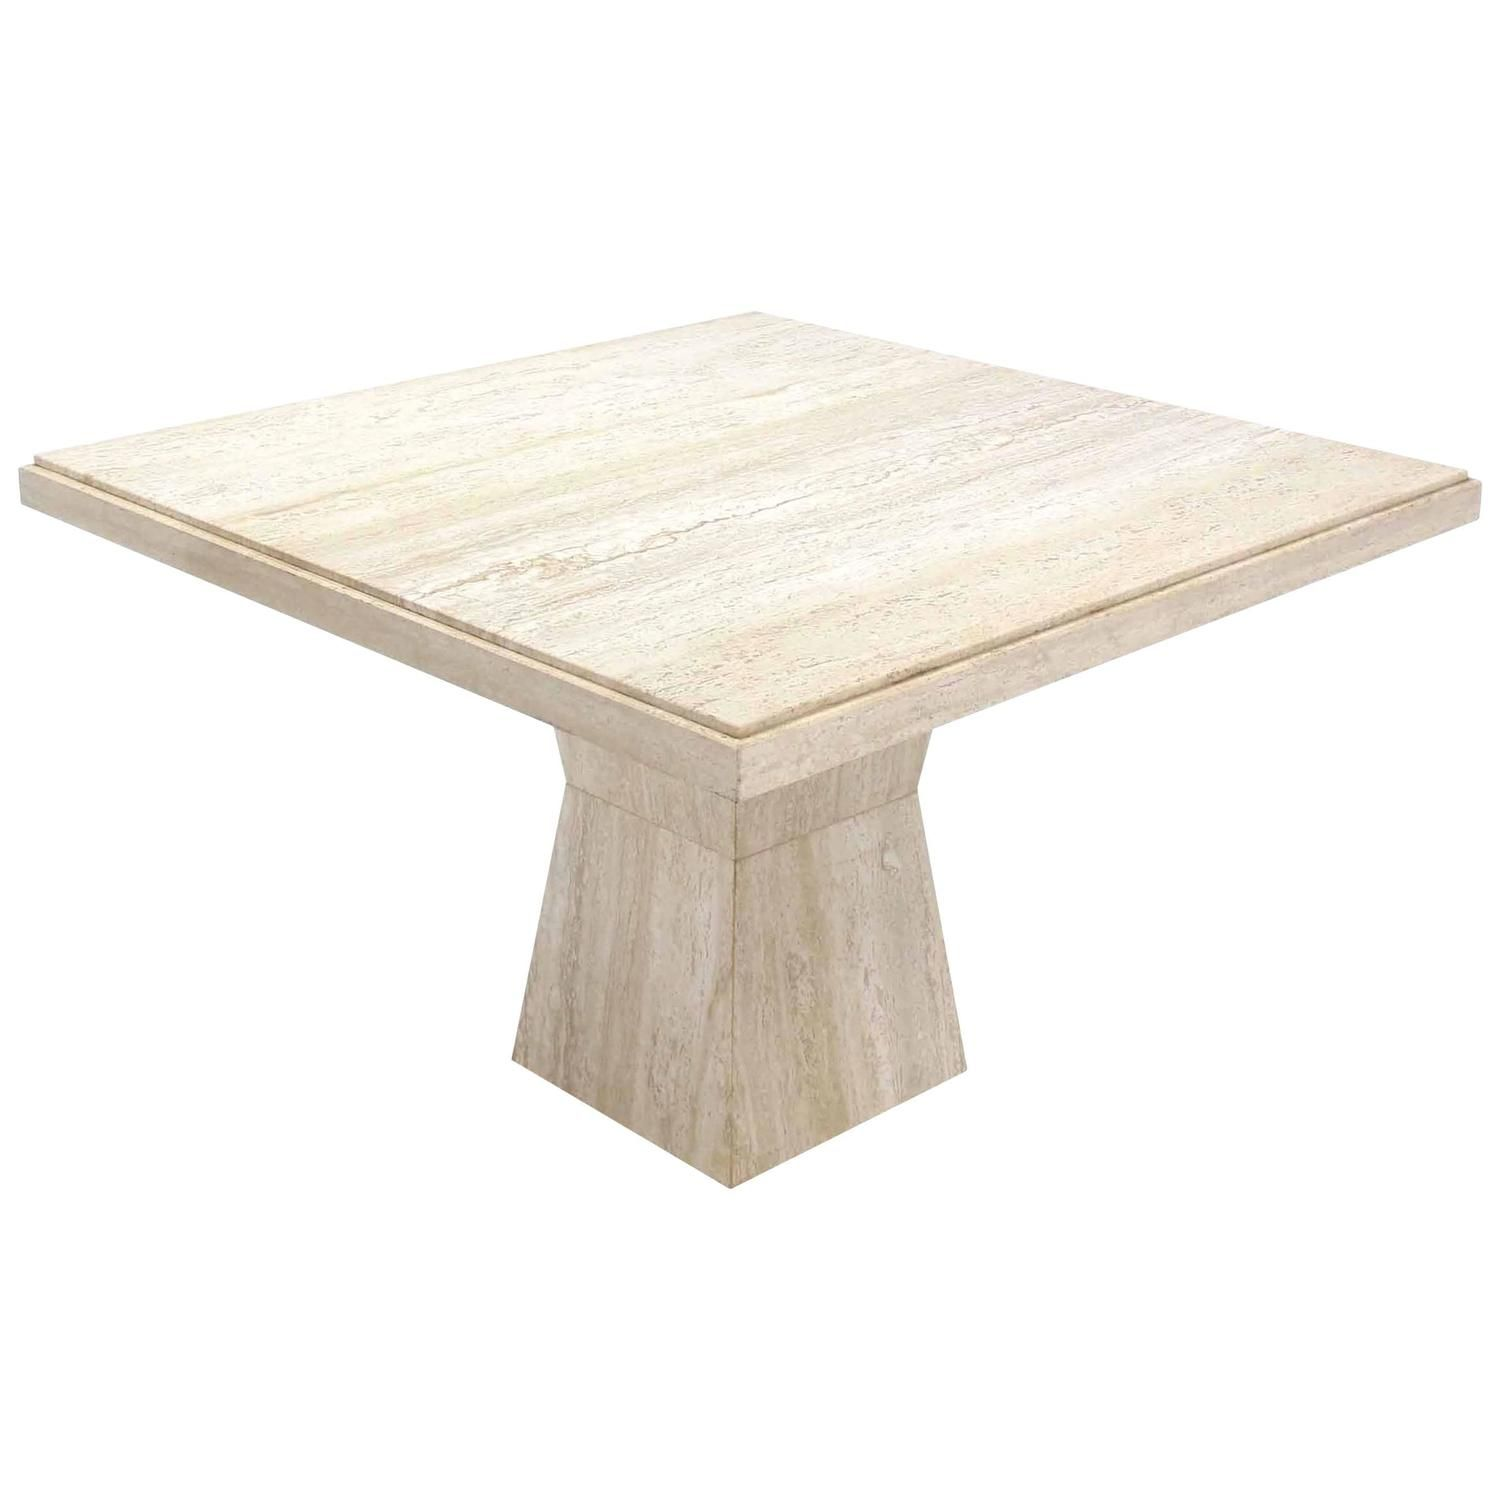 44 Inch Square Travertine Table On Double Tapered Base